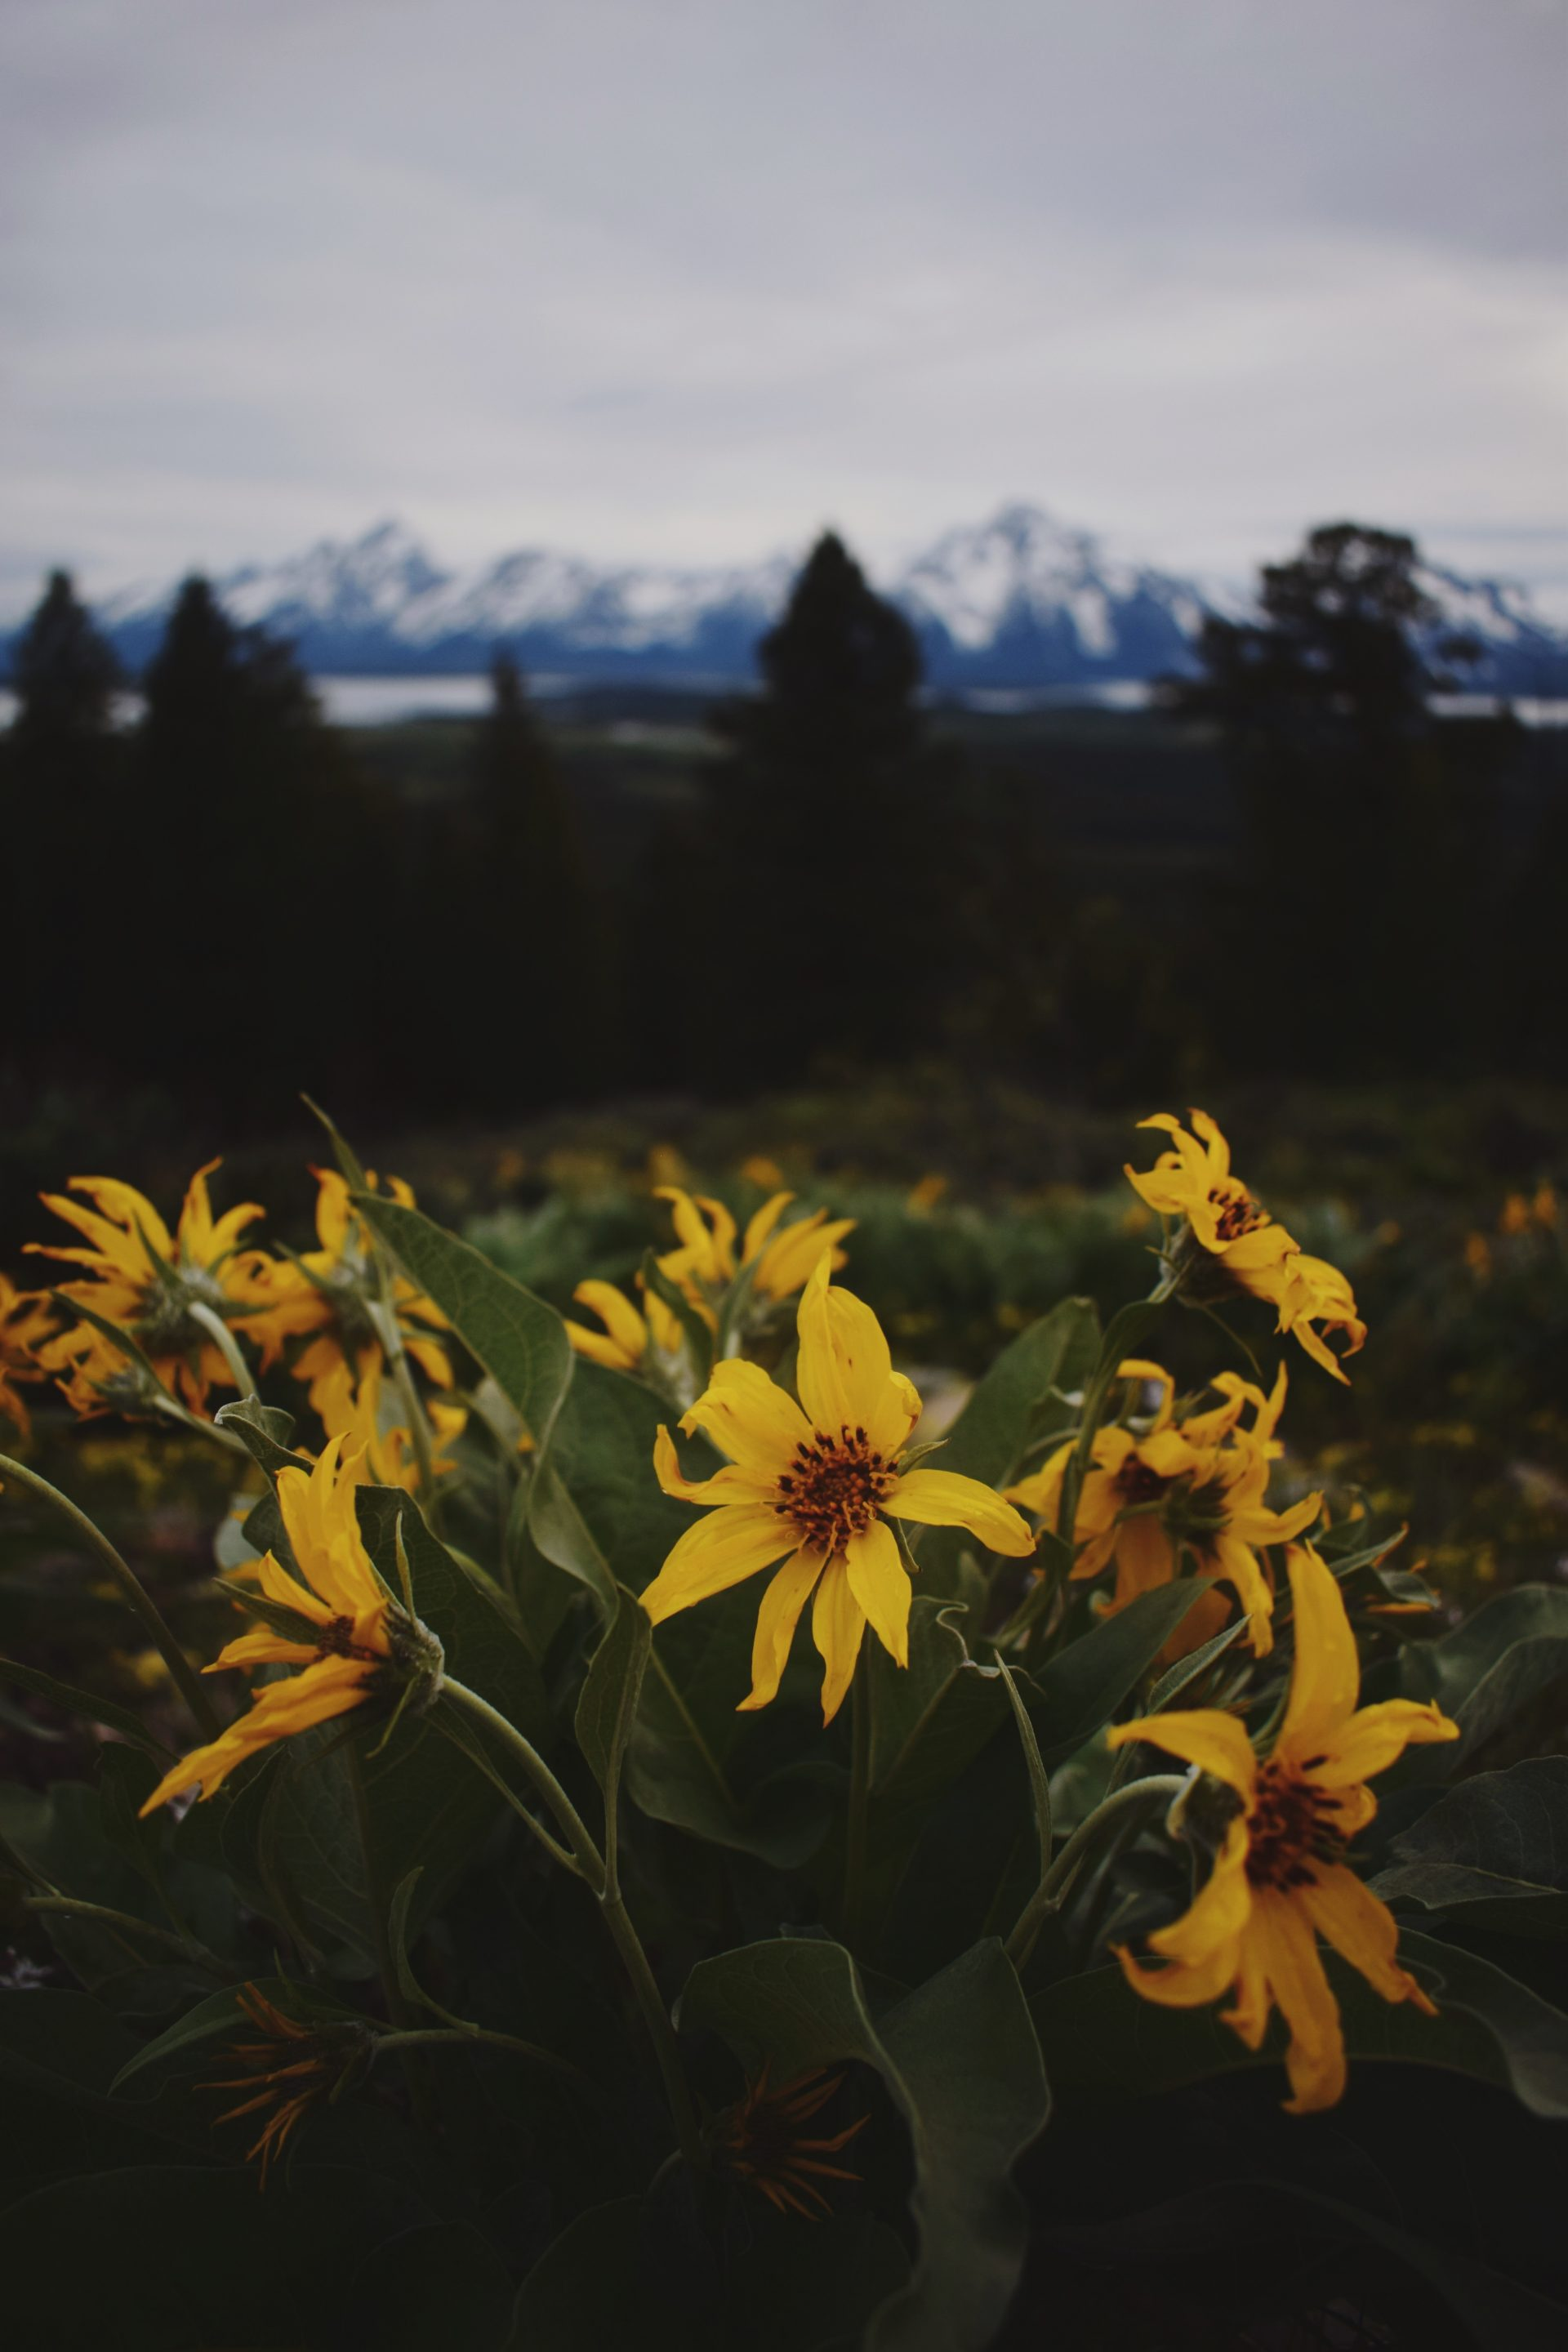 yellow flowers with blurry mountains in the background